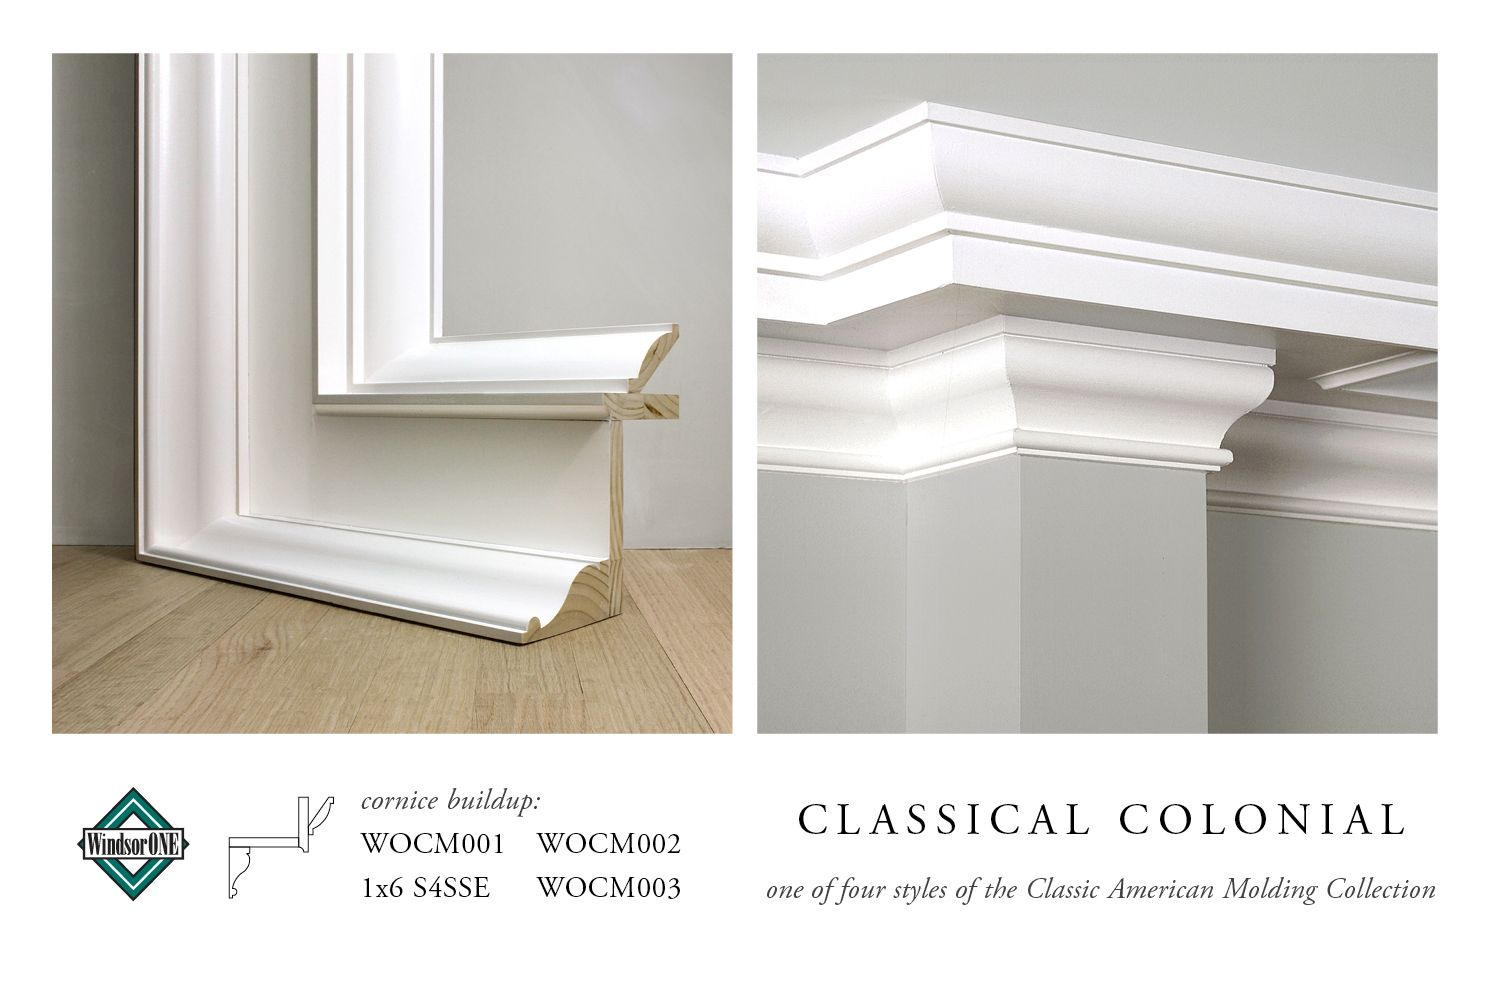 Windsorone Classical Colonial Cornice Buildup Of Wocm001